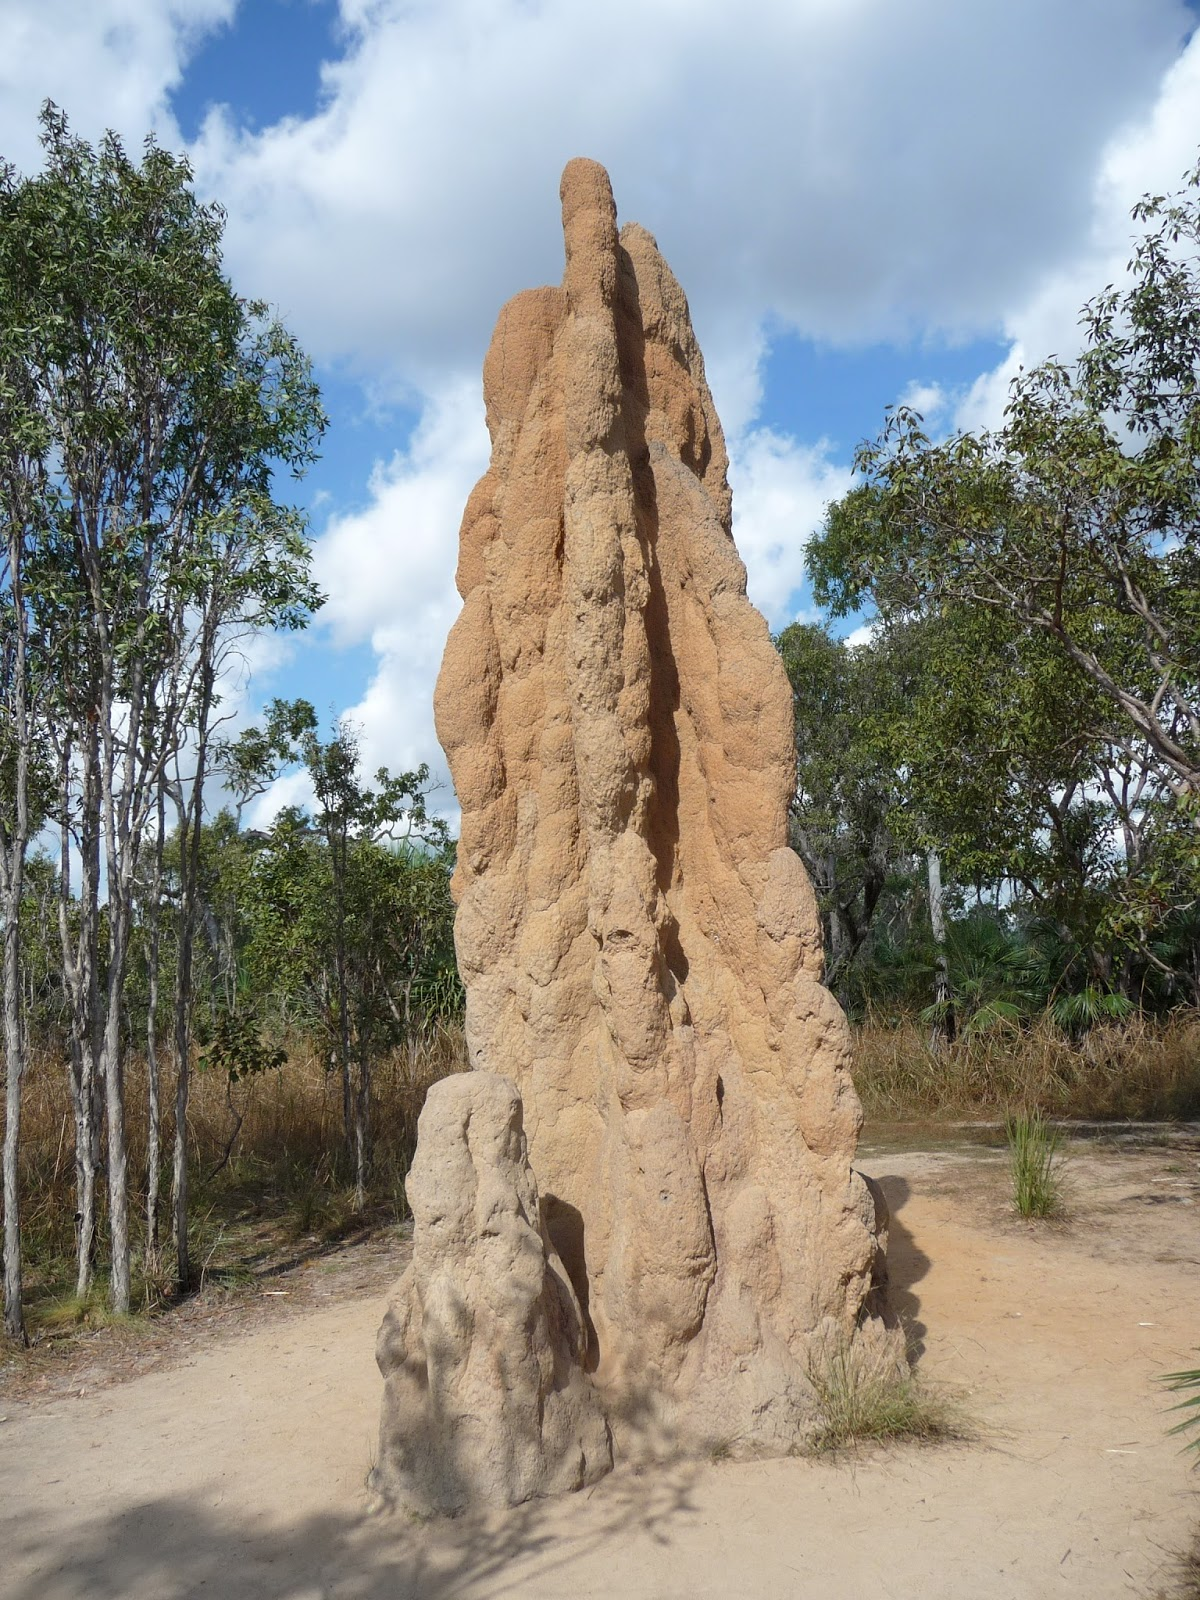 Picture of a termite mound.